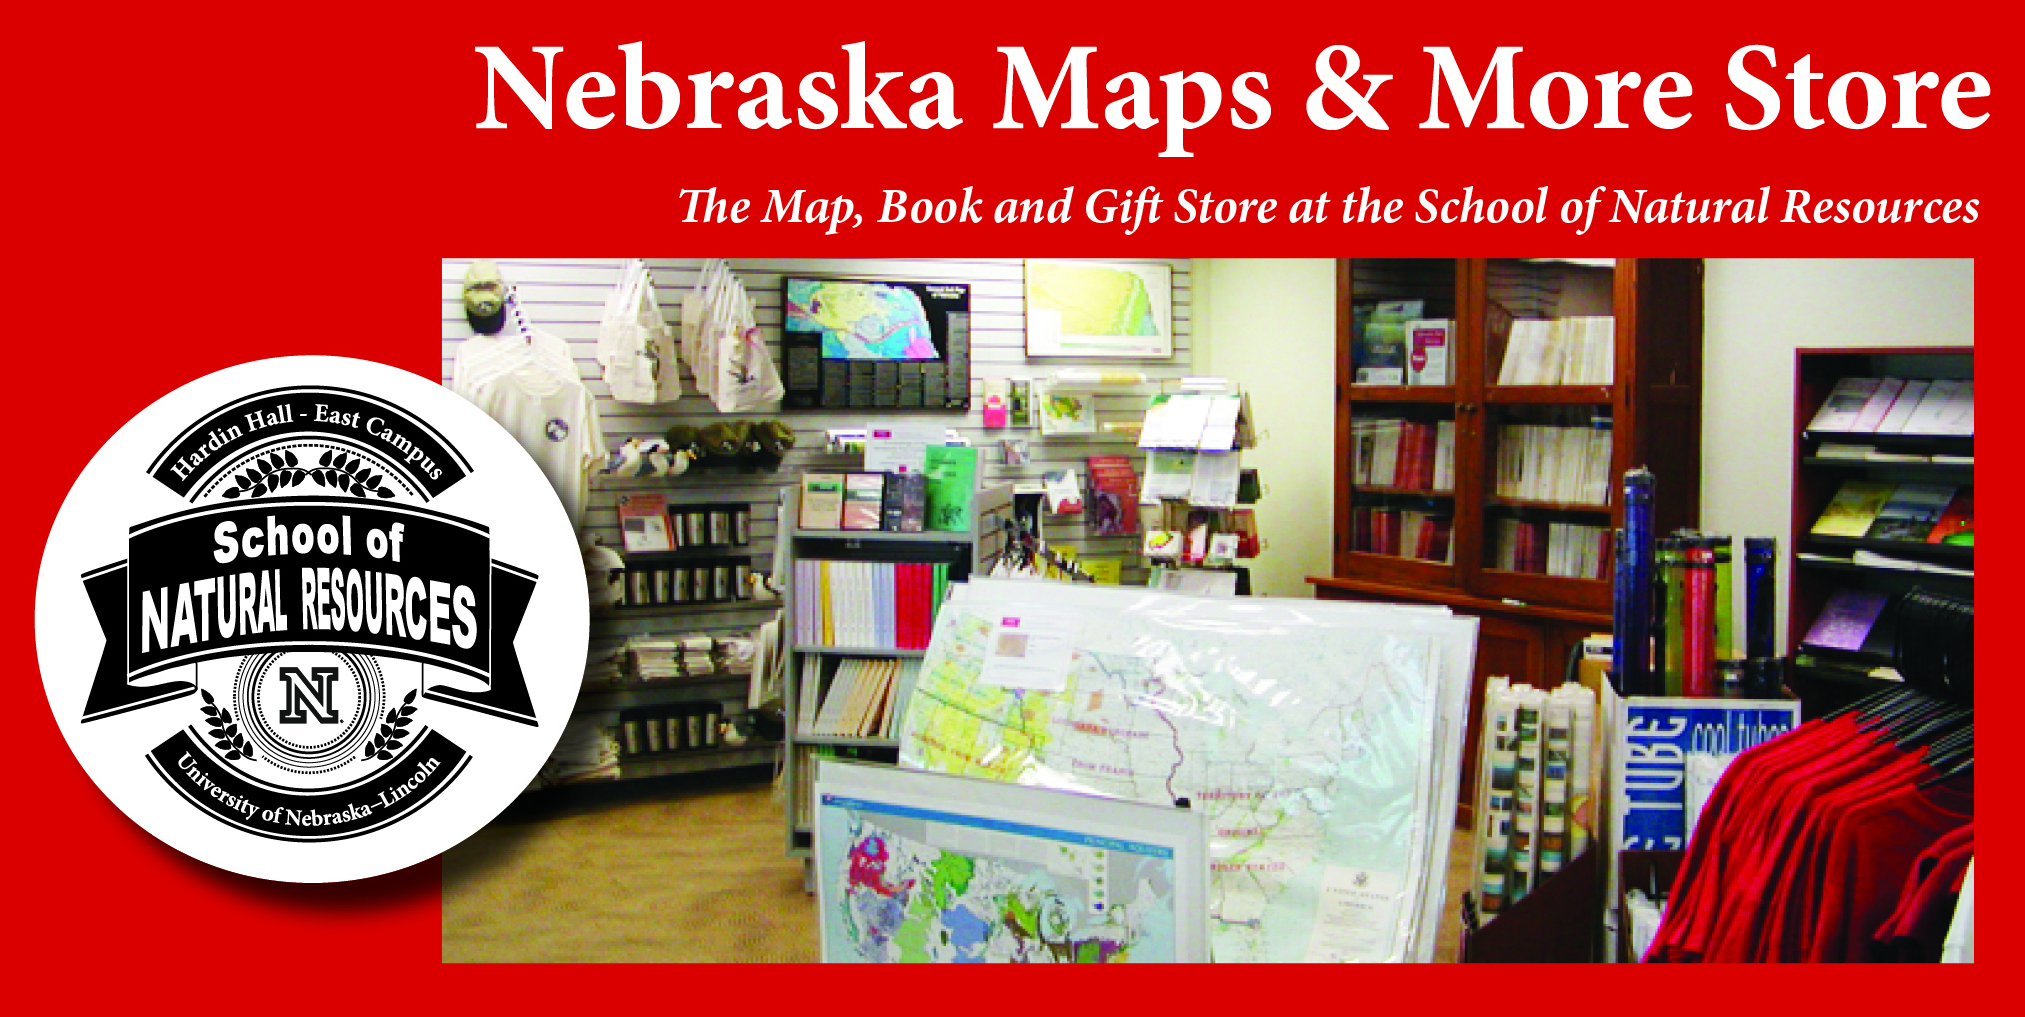 Nebraska Maps and More Store